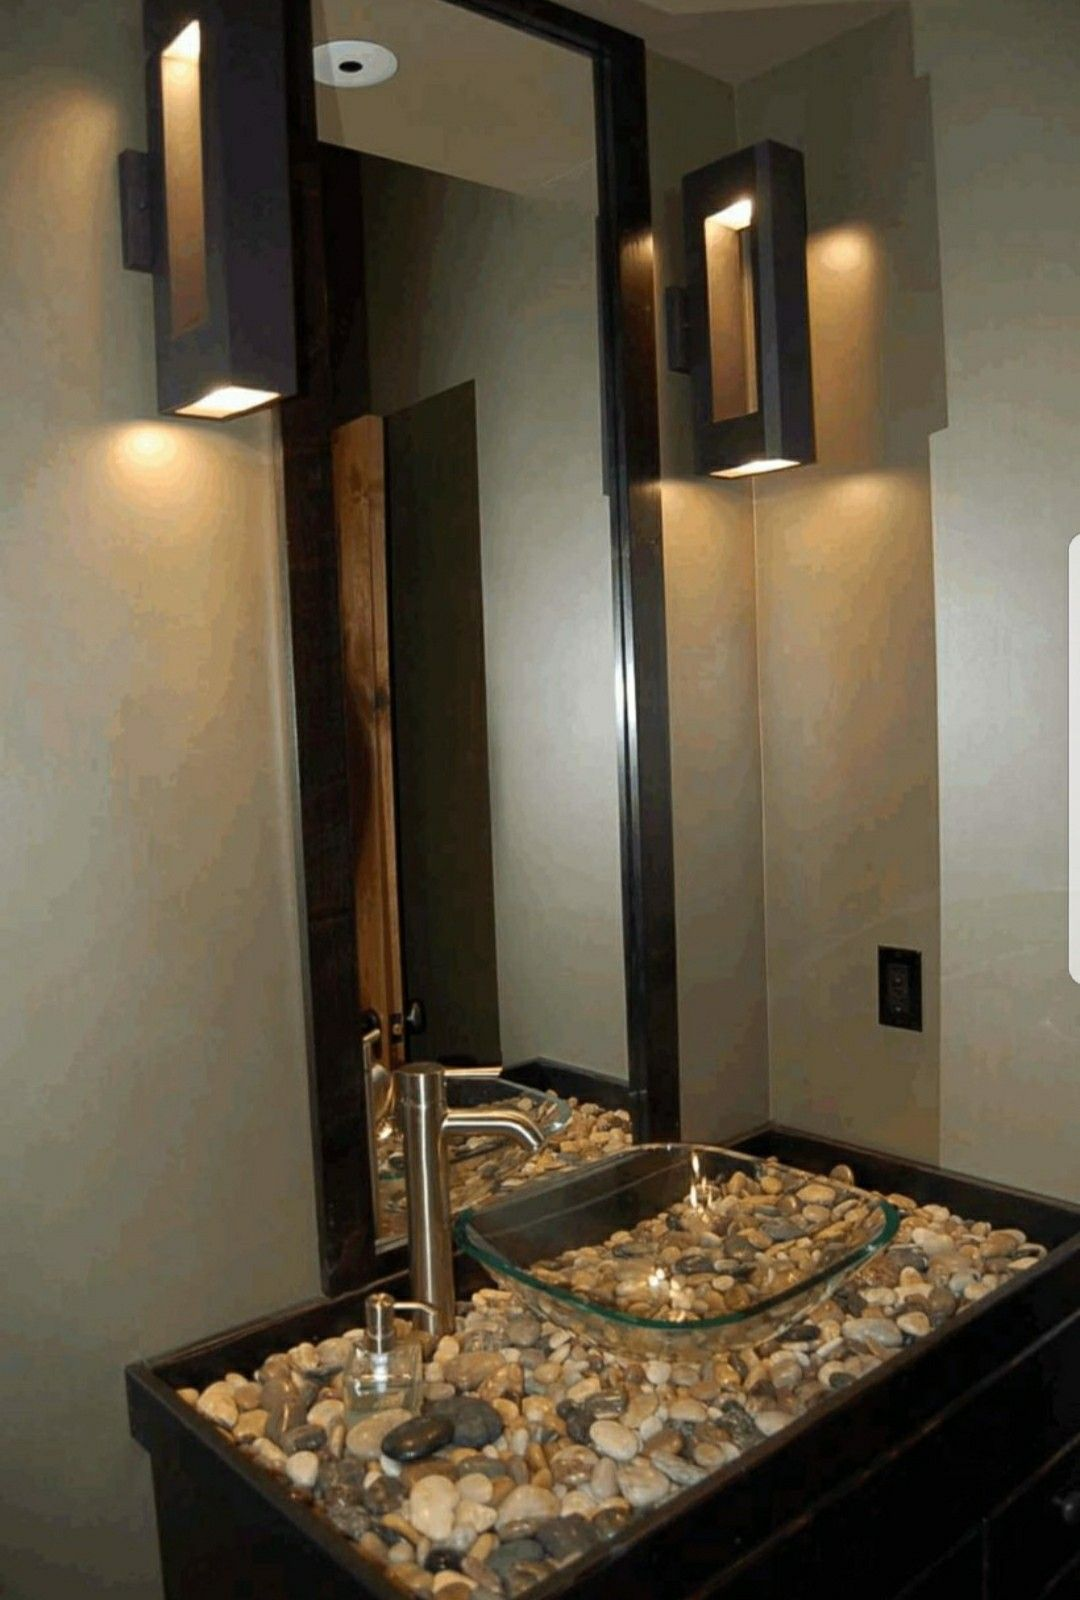 Pin by Fallacy on interior design ideas | Bathroom remodel ...